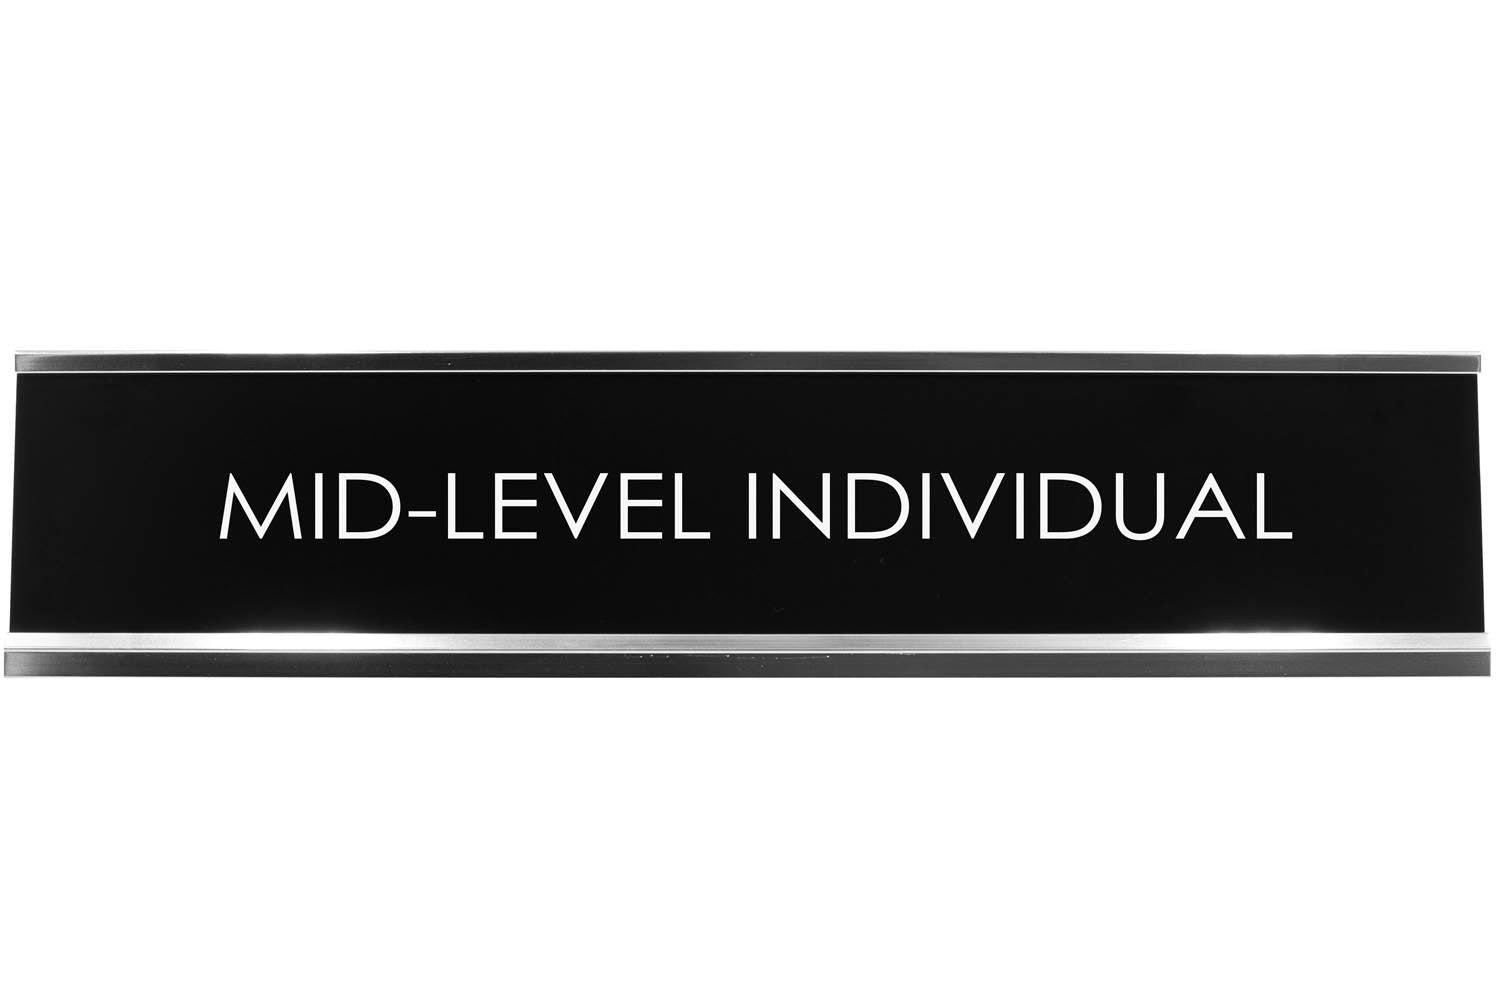 Mid-Level Individual Novelty Desk Sign